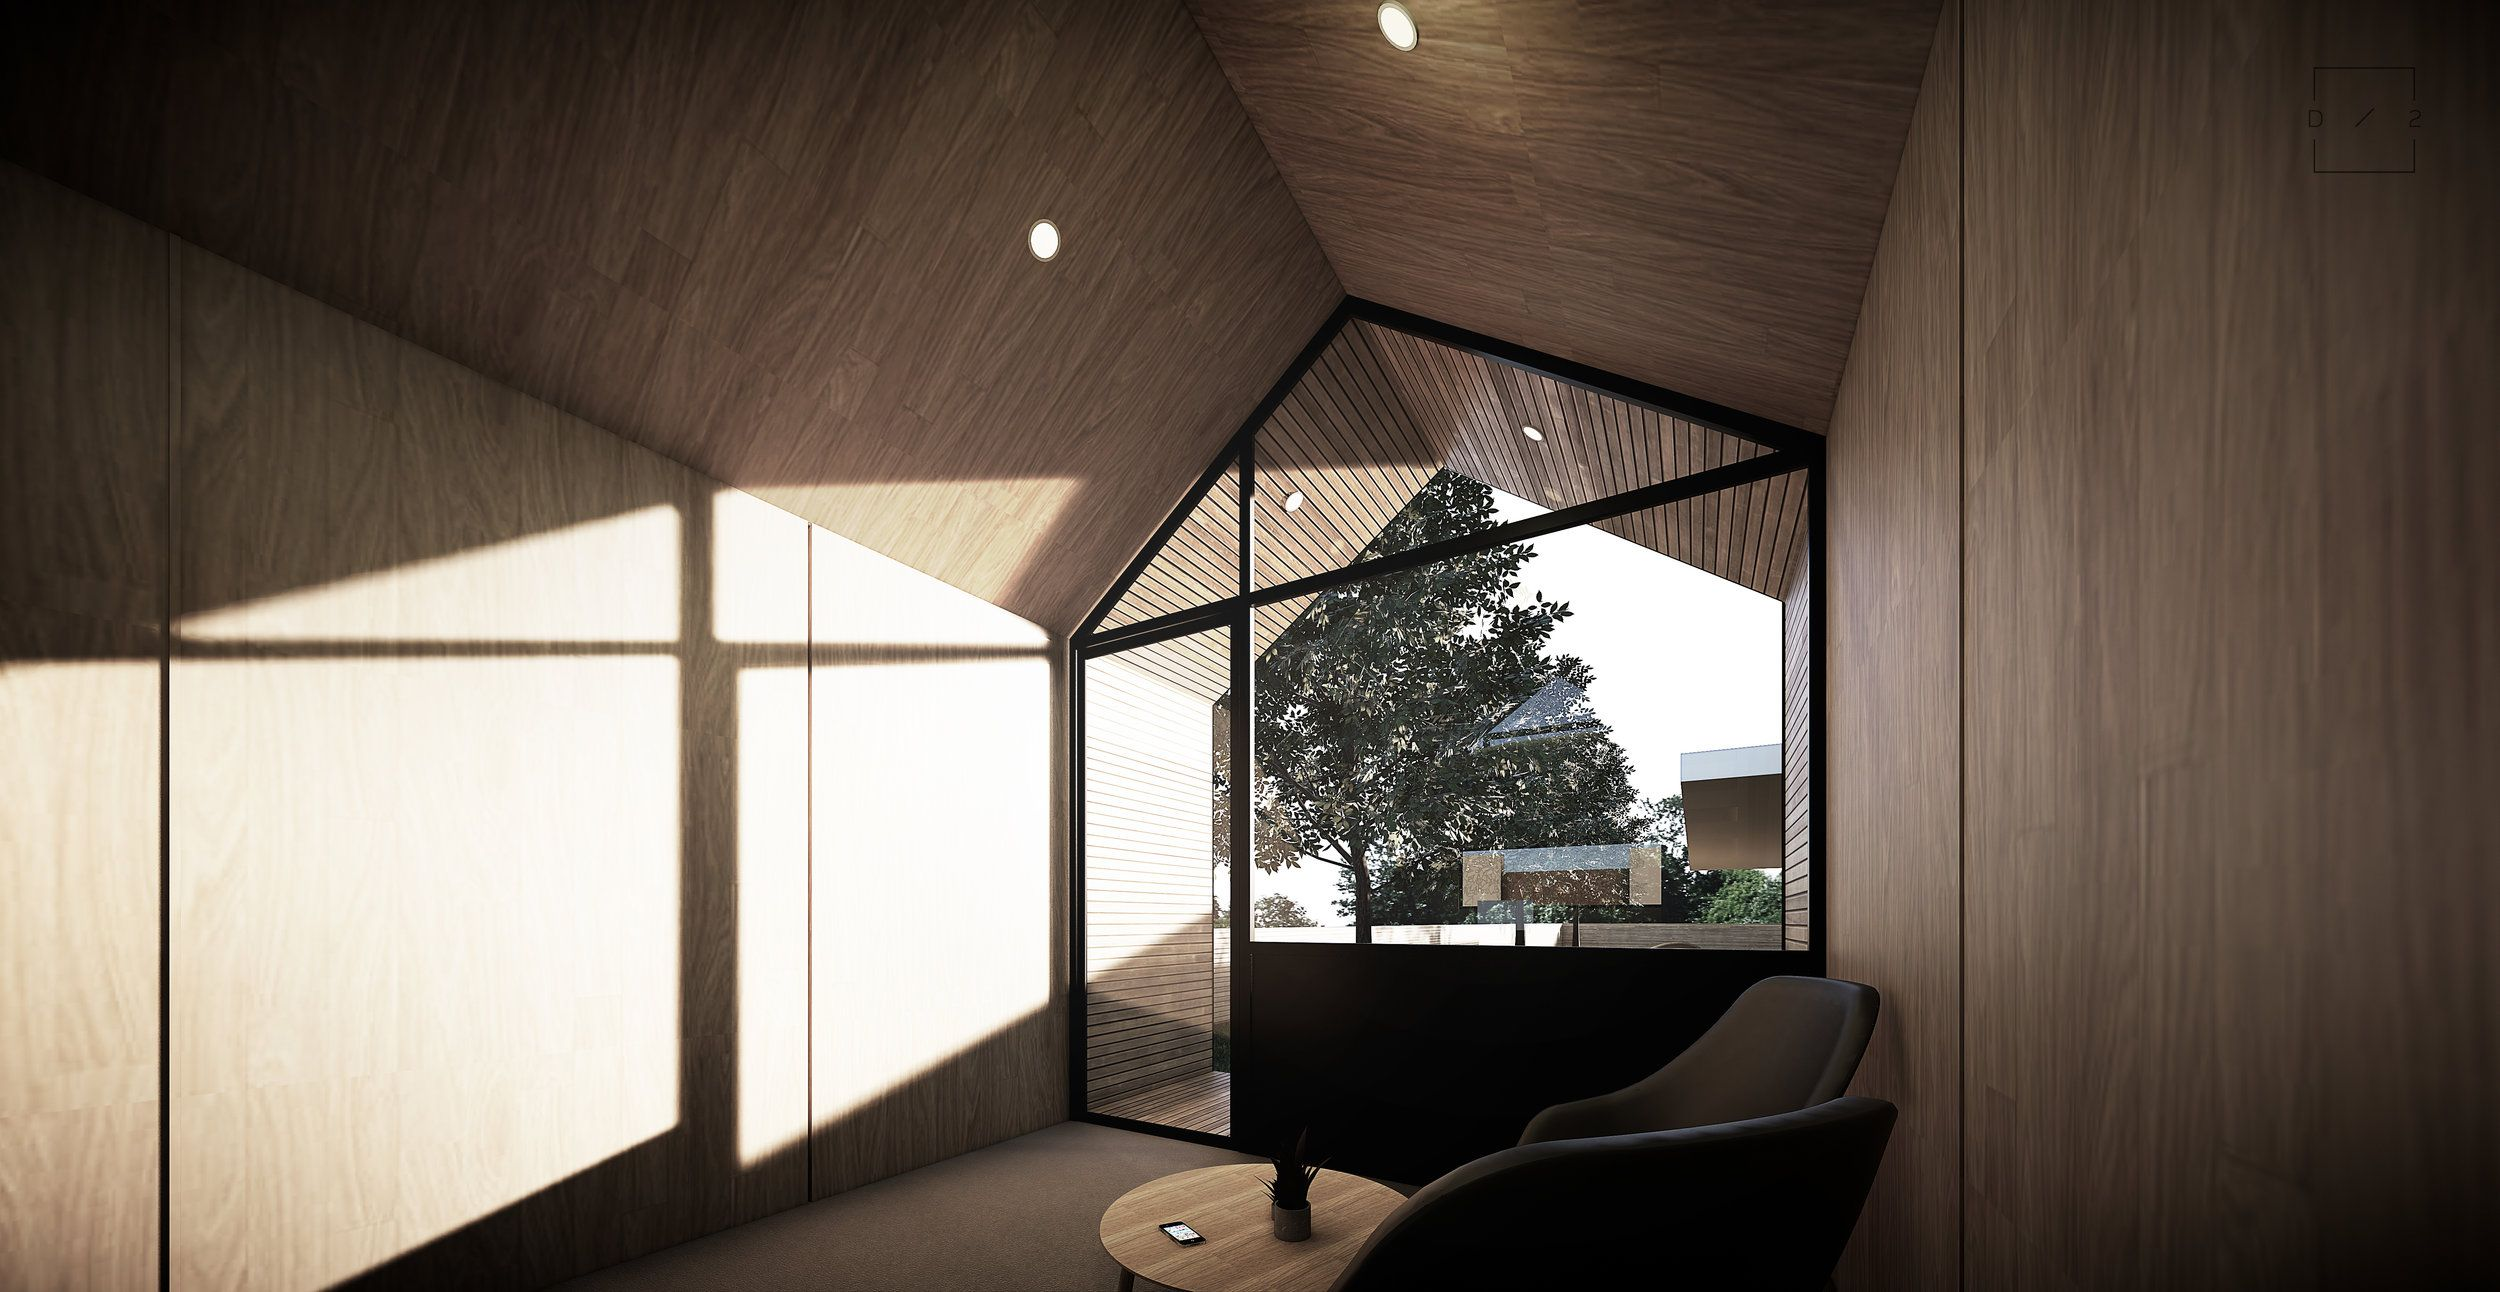 DUO.Interior.Exterior.jpg Cabins and cottages